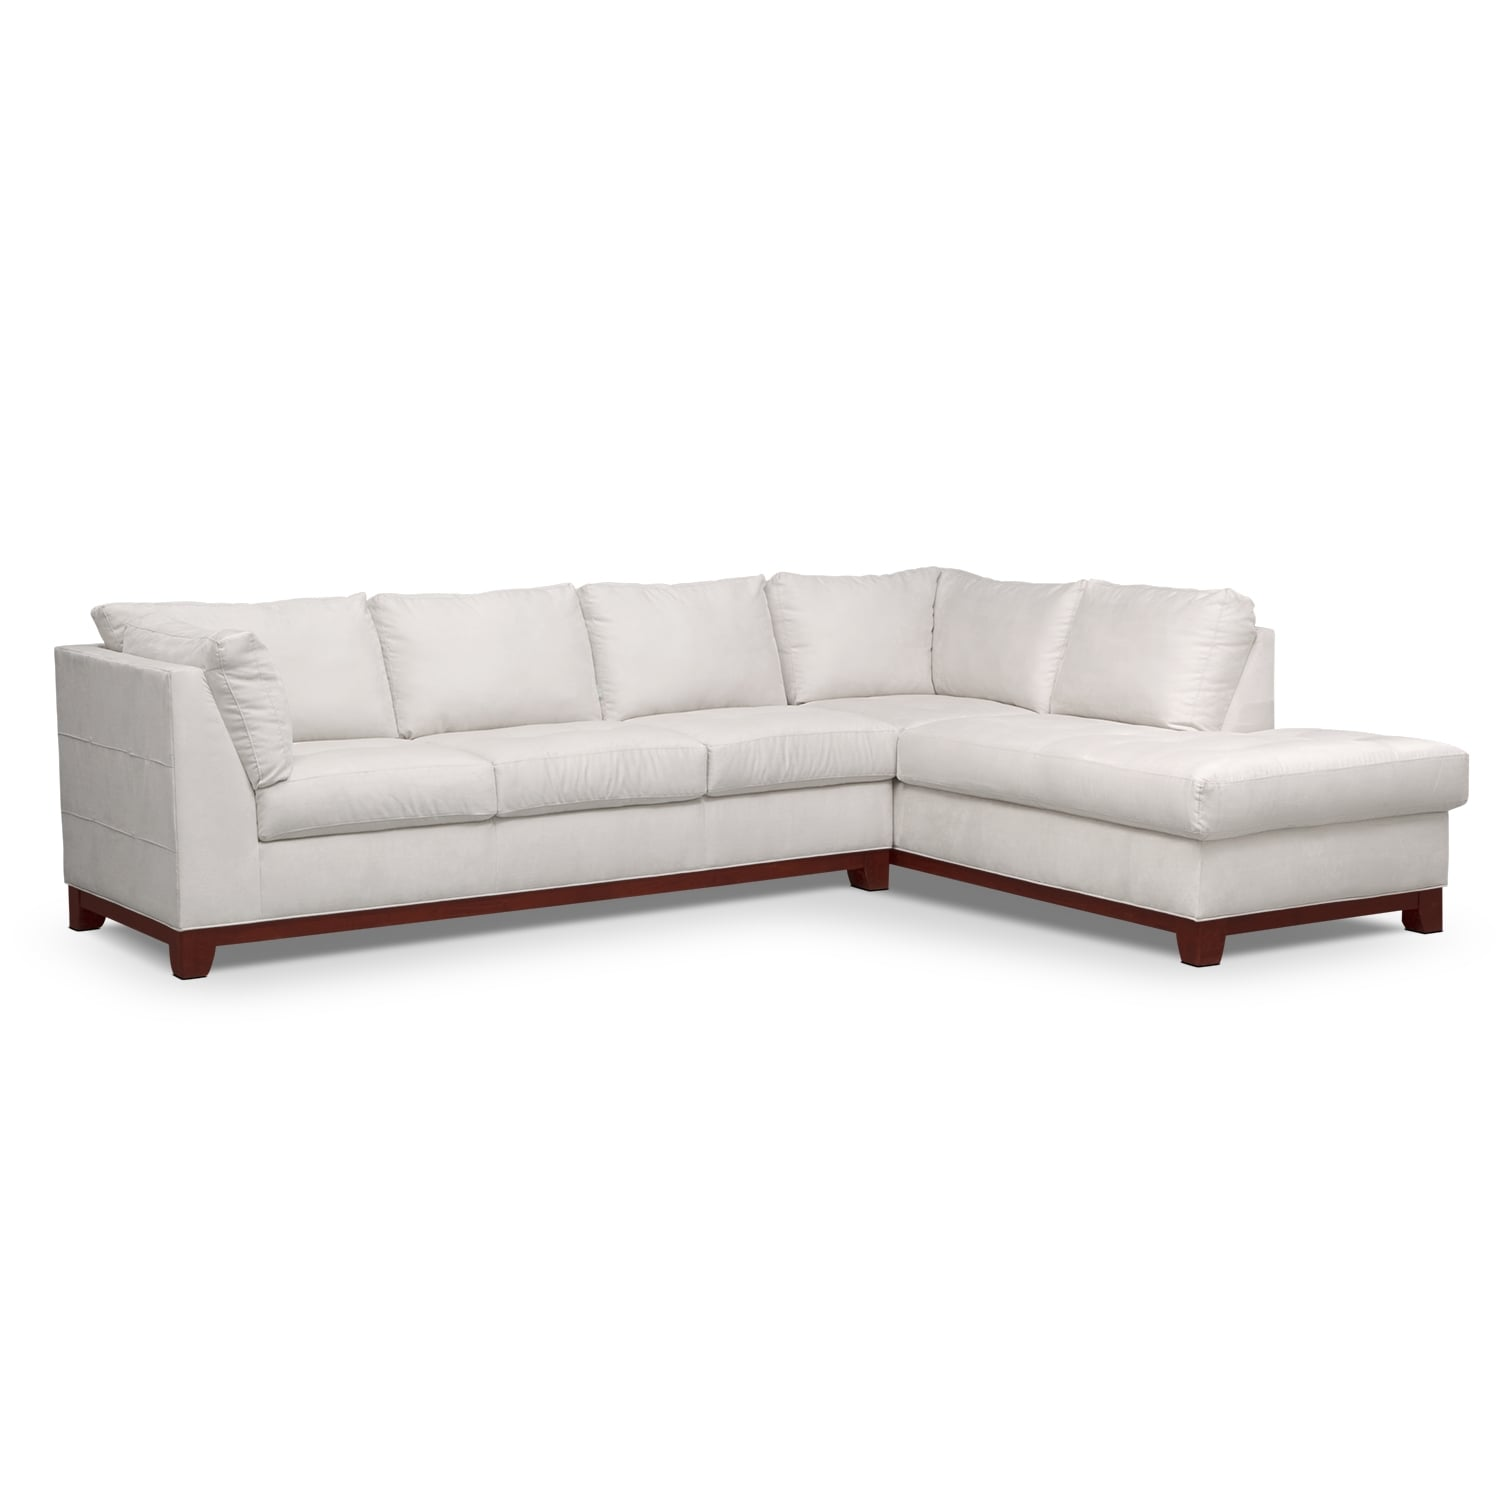 Soho 2 piece sectional with right facing chaise cement for Couch with 2 chaises